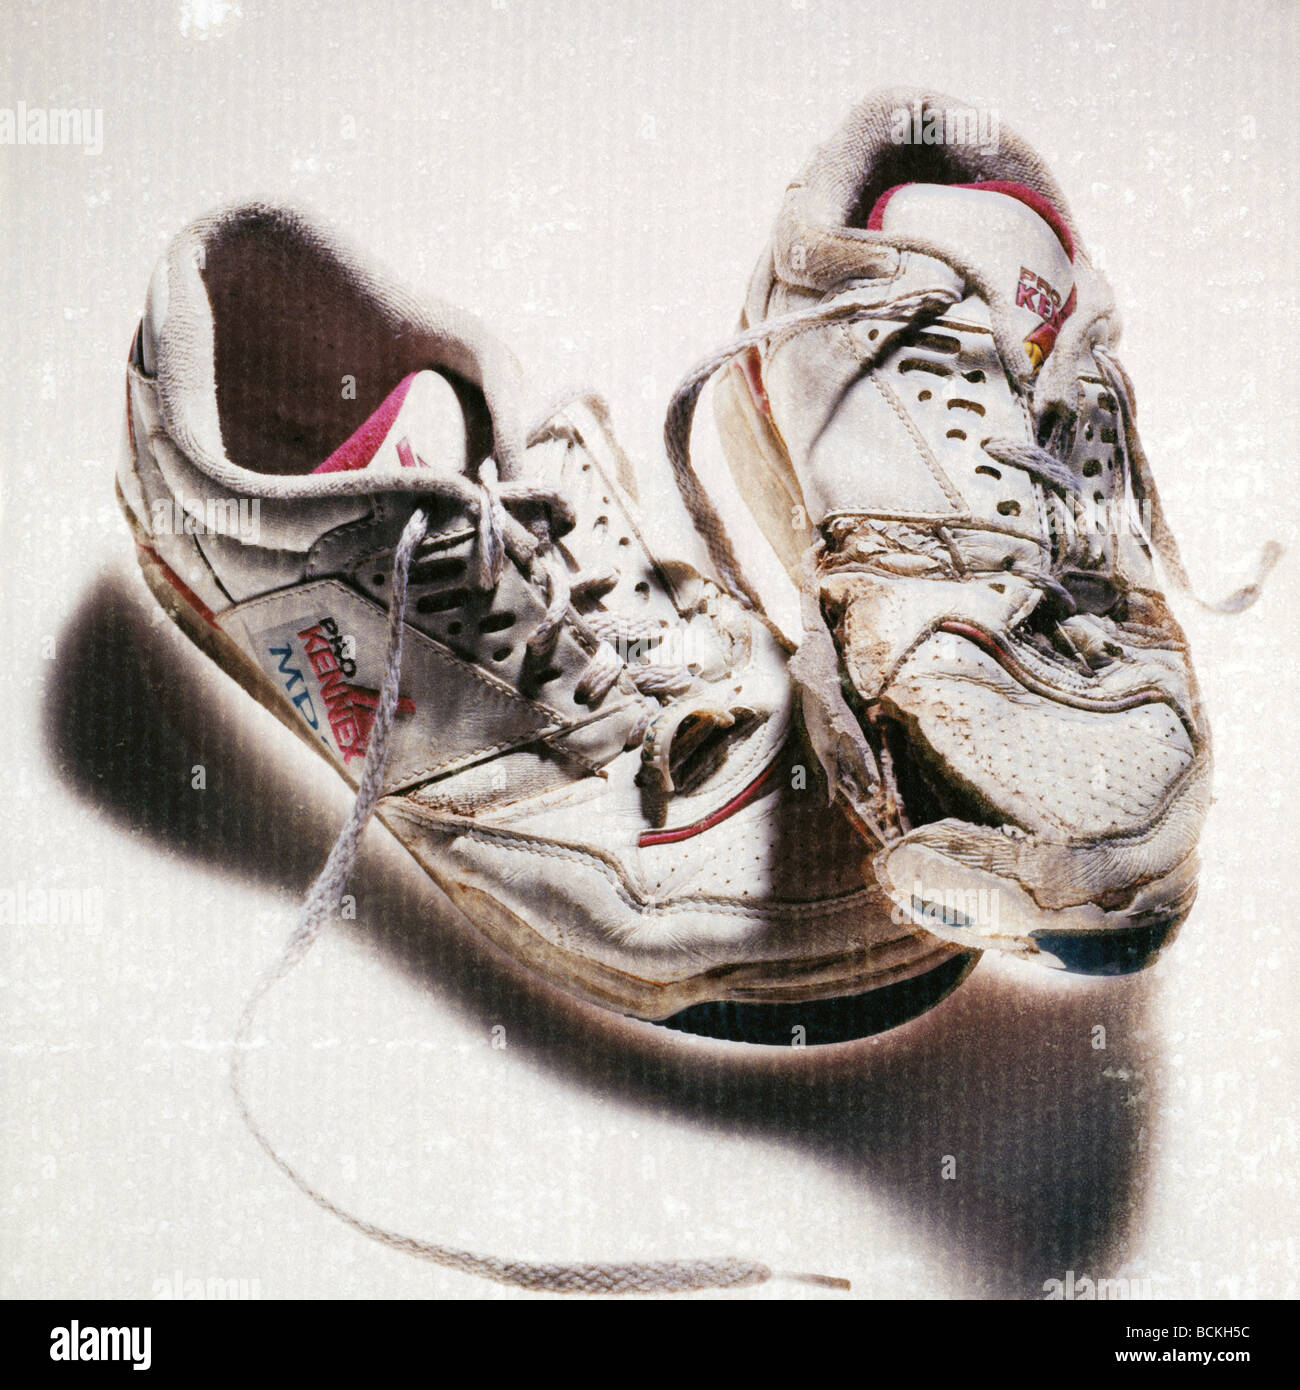 Alamy Old Shoes Images Photosamp; Tennis Stock 3Aq4jL5R